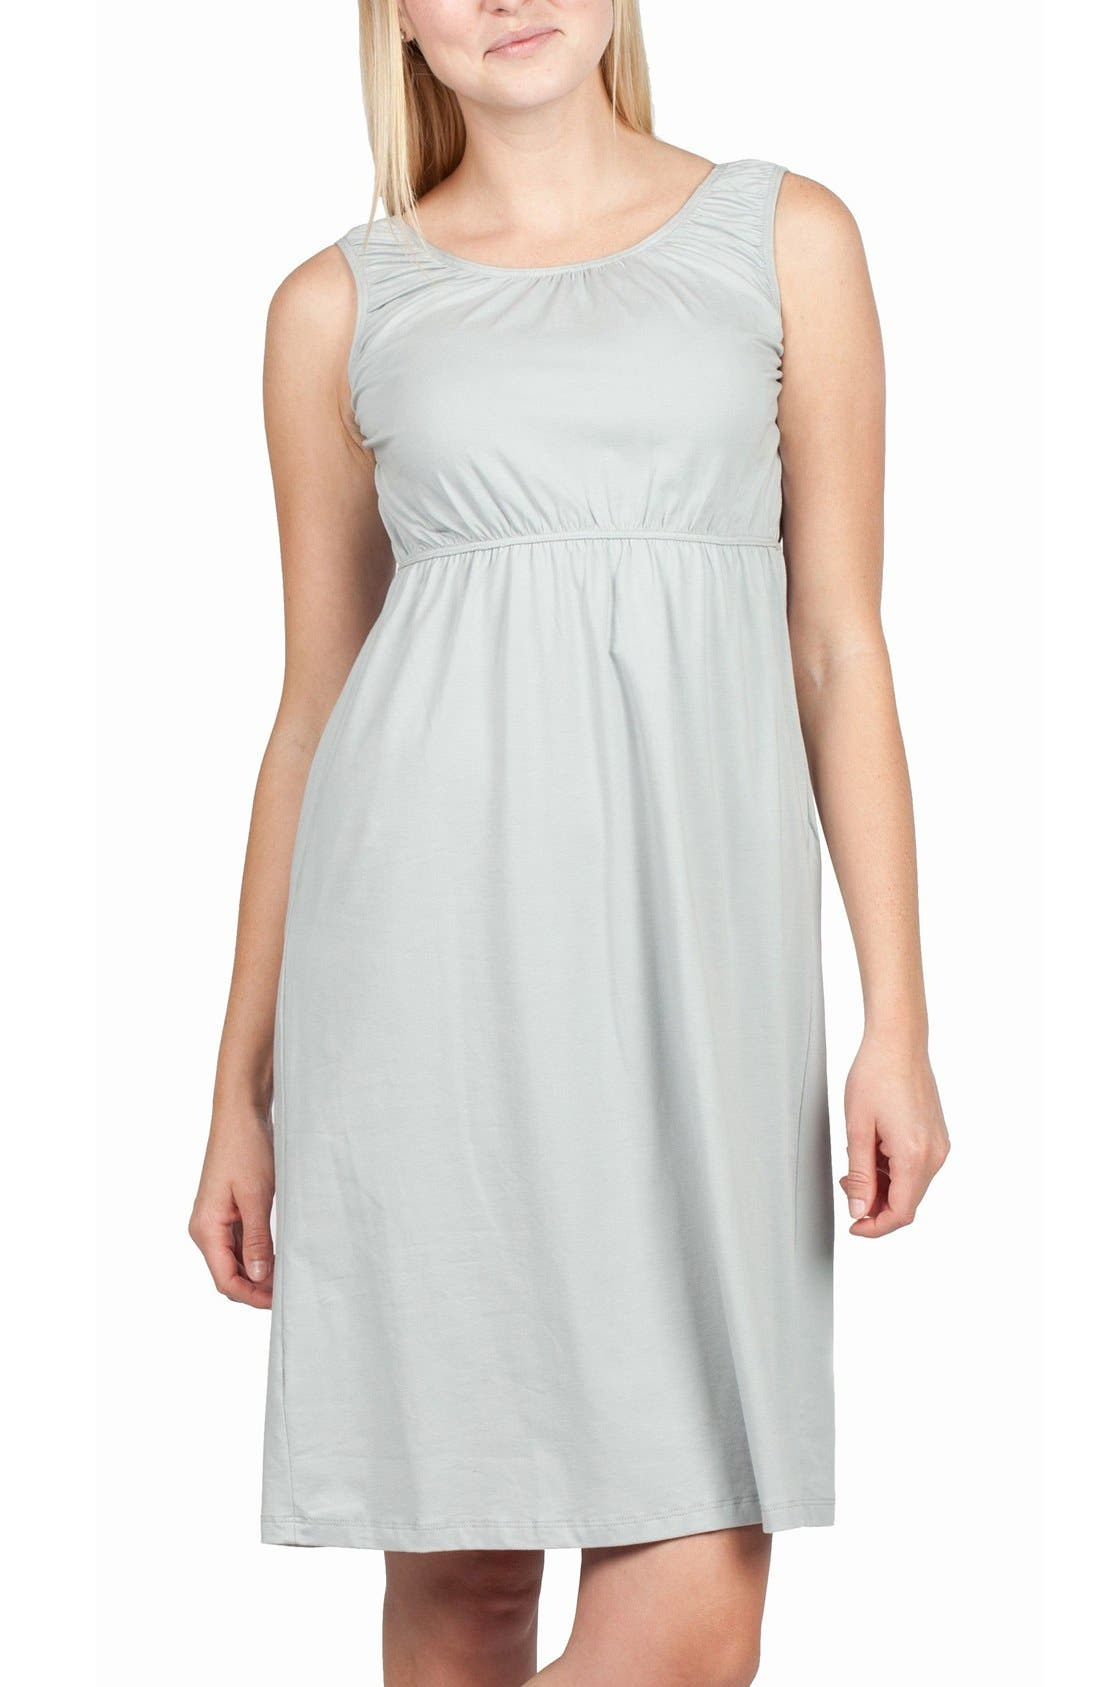 Find great deals on eBay for maternity nightie. Shop with confidence.